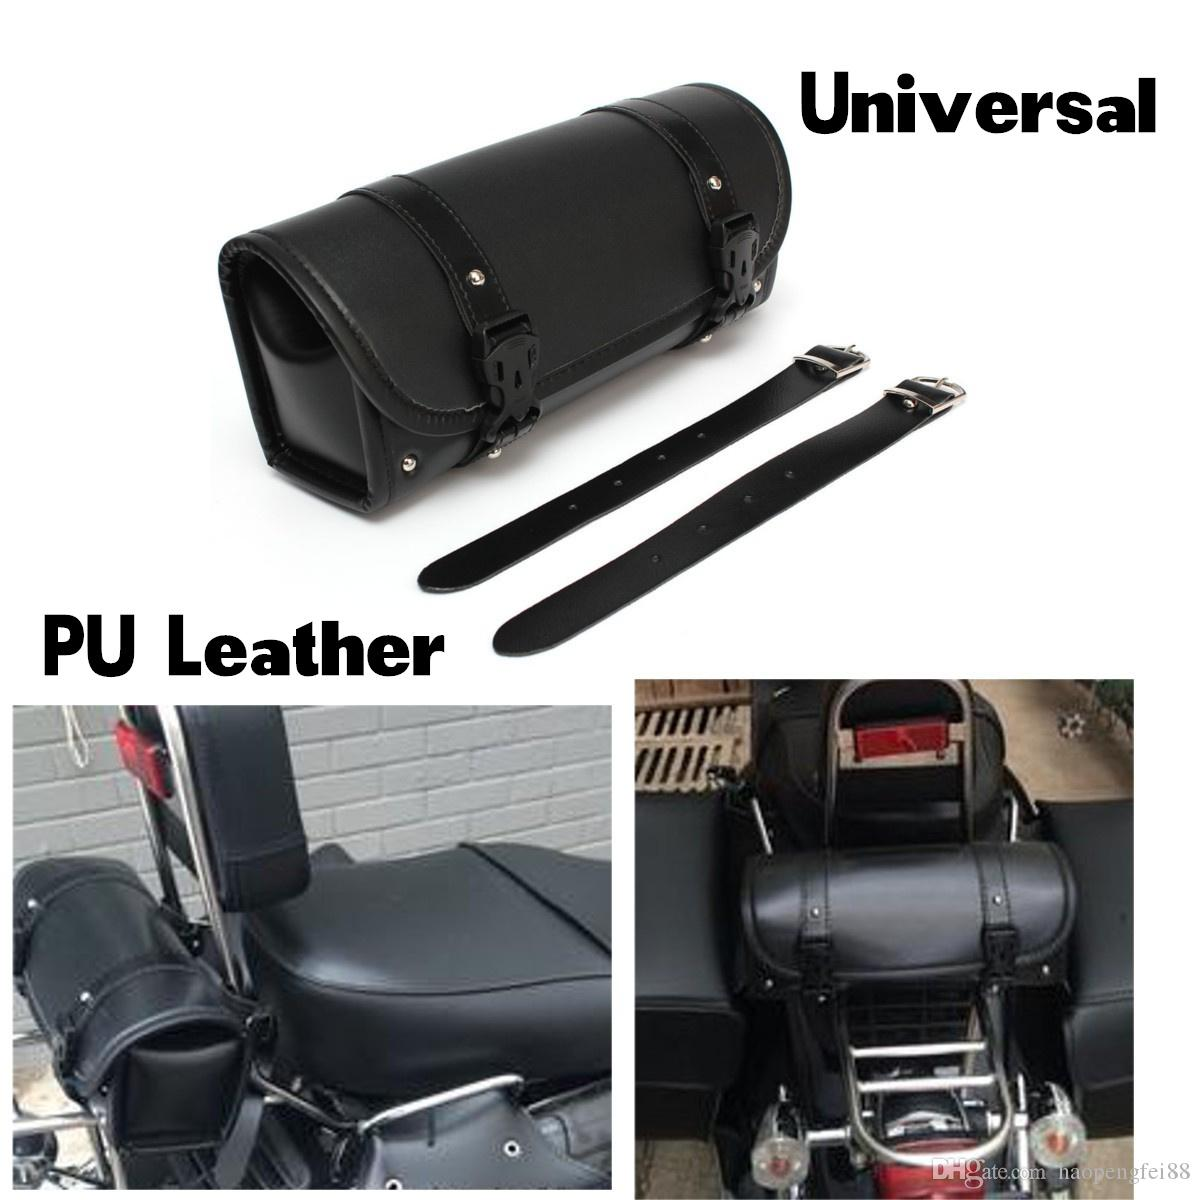 Motorcycle Tool Bag >> Universal Motorcycle Tool Bag Pu Leather Luggage Handle Bar Round Barrel Storage Pouch